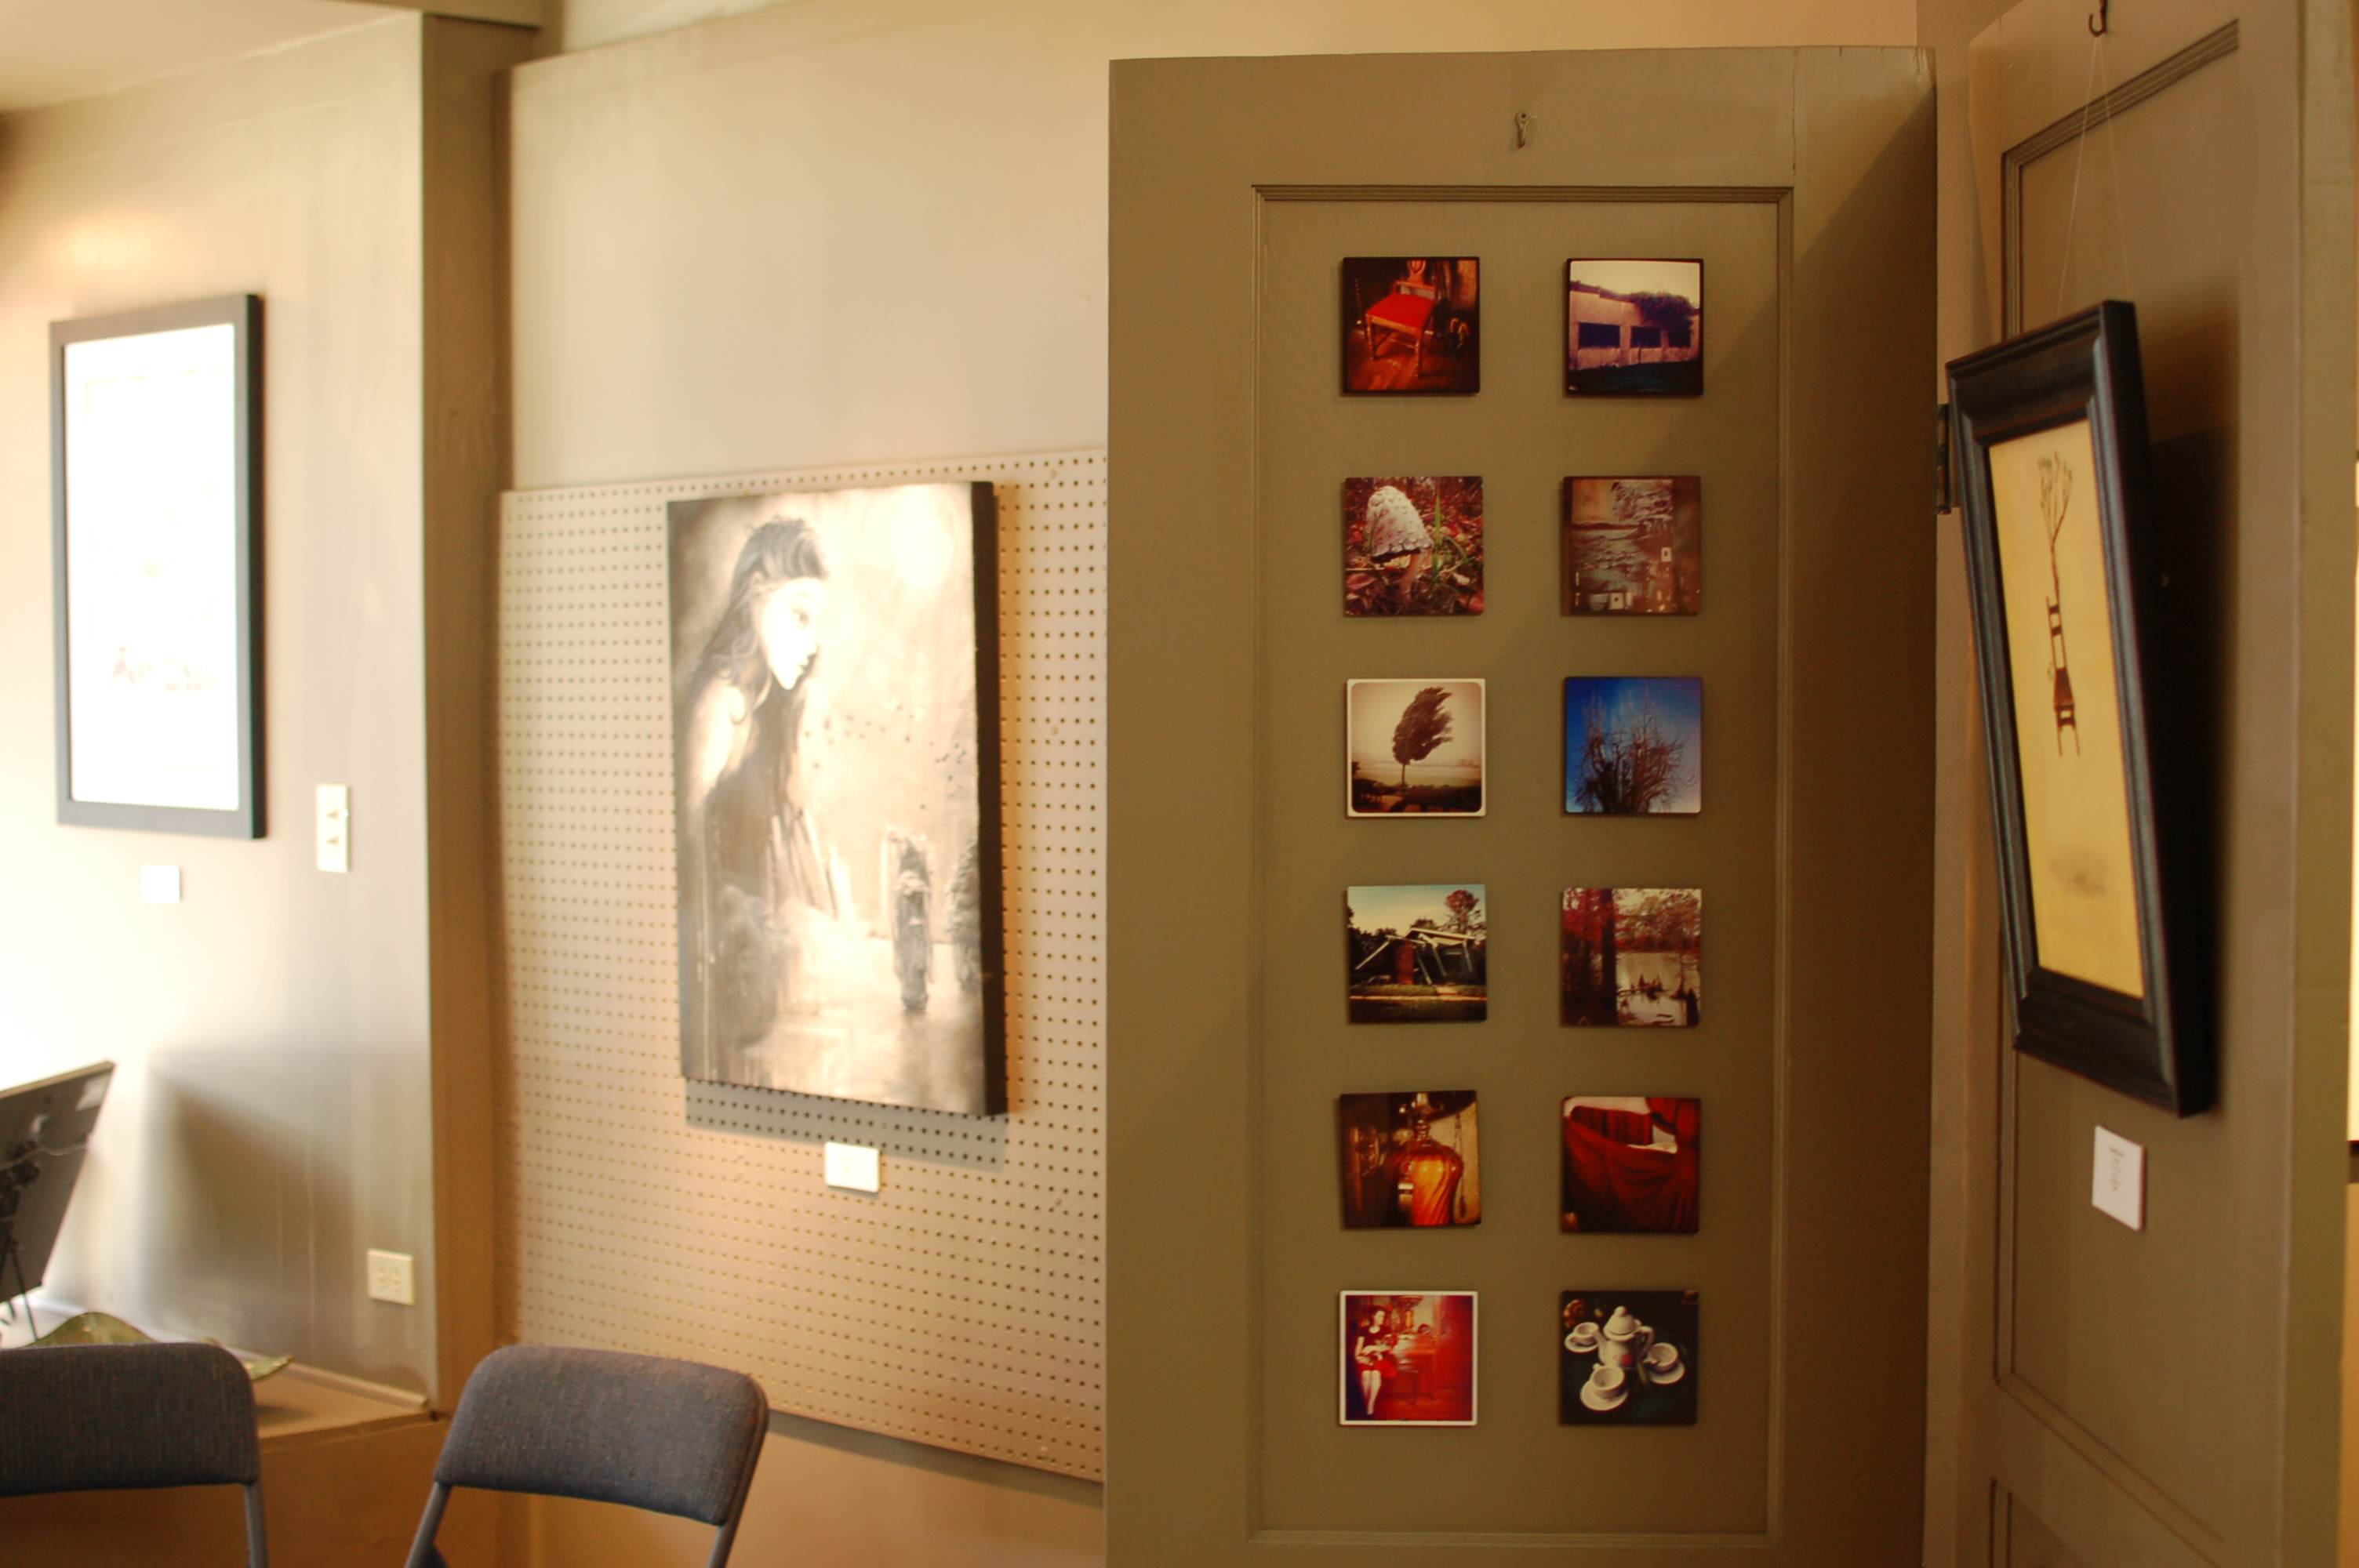 Near the window, paintings and photography